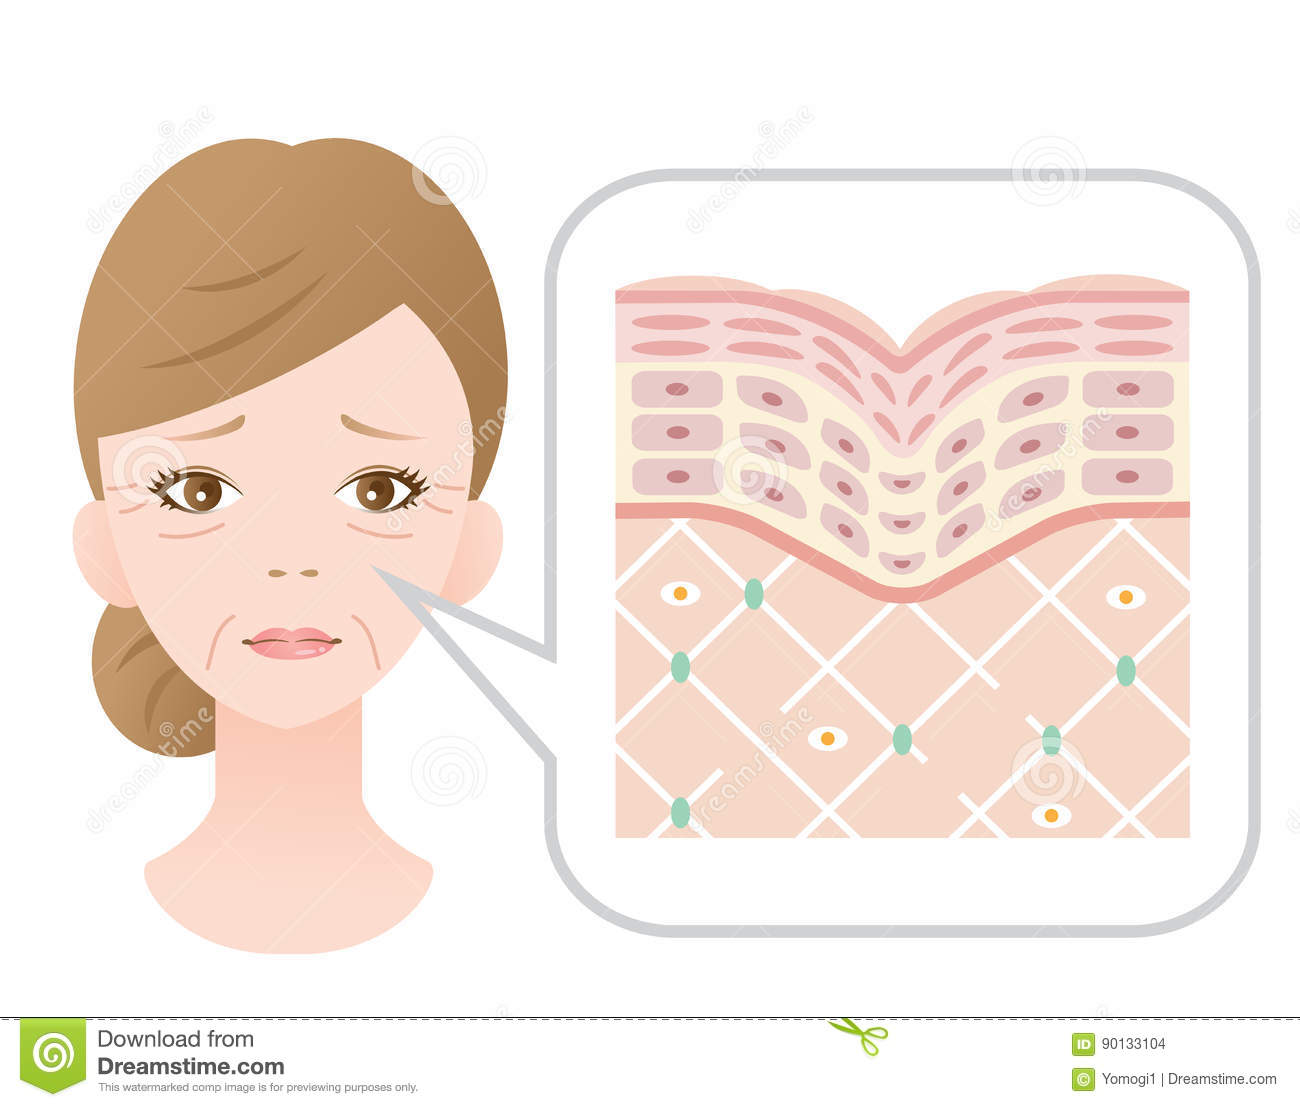 hight resolution of diagram of old skin showing the collagen framework is broken and wrinkles appears